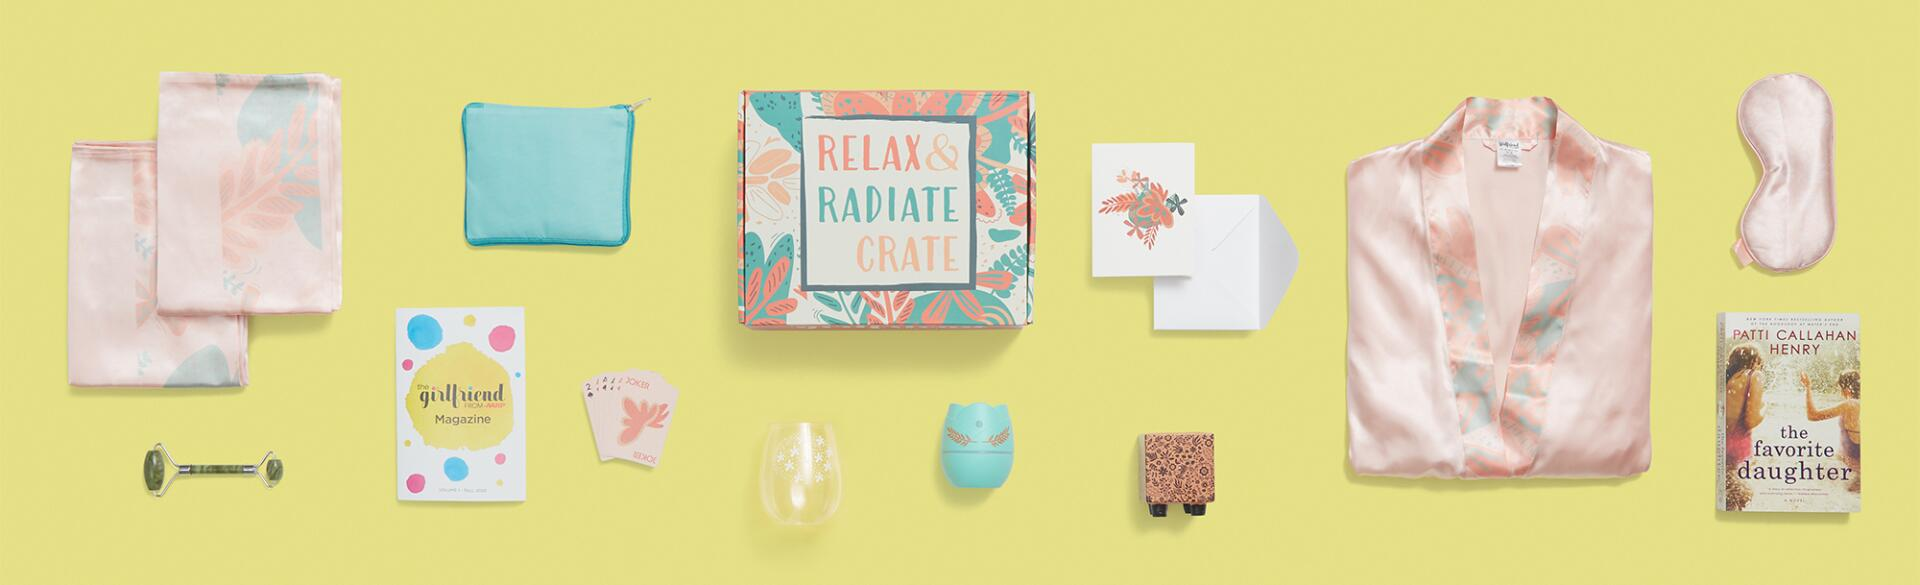 Fall 2020 Relax and Radiate crate contents photographed from above on a yellow background